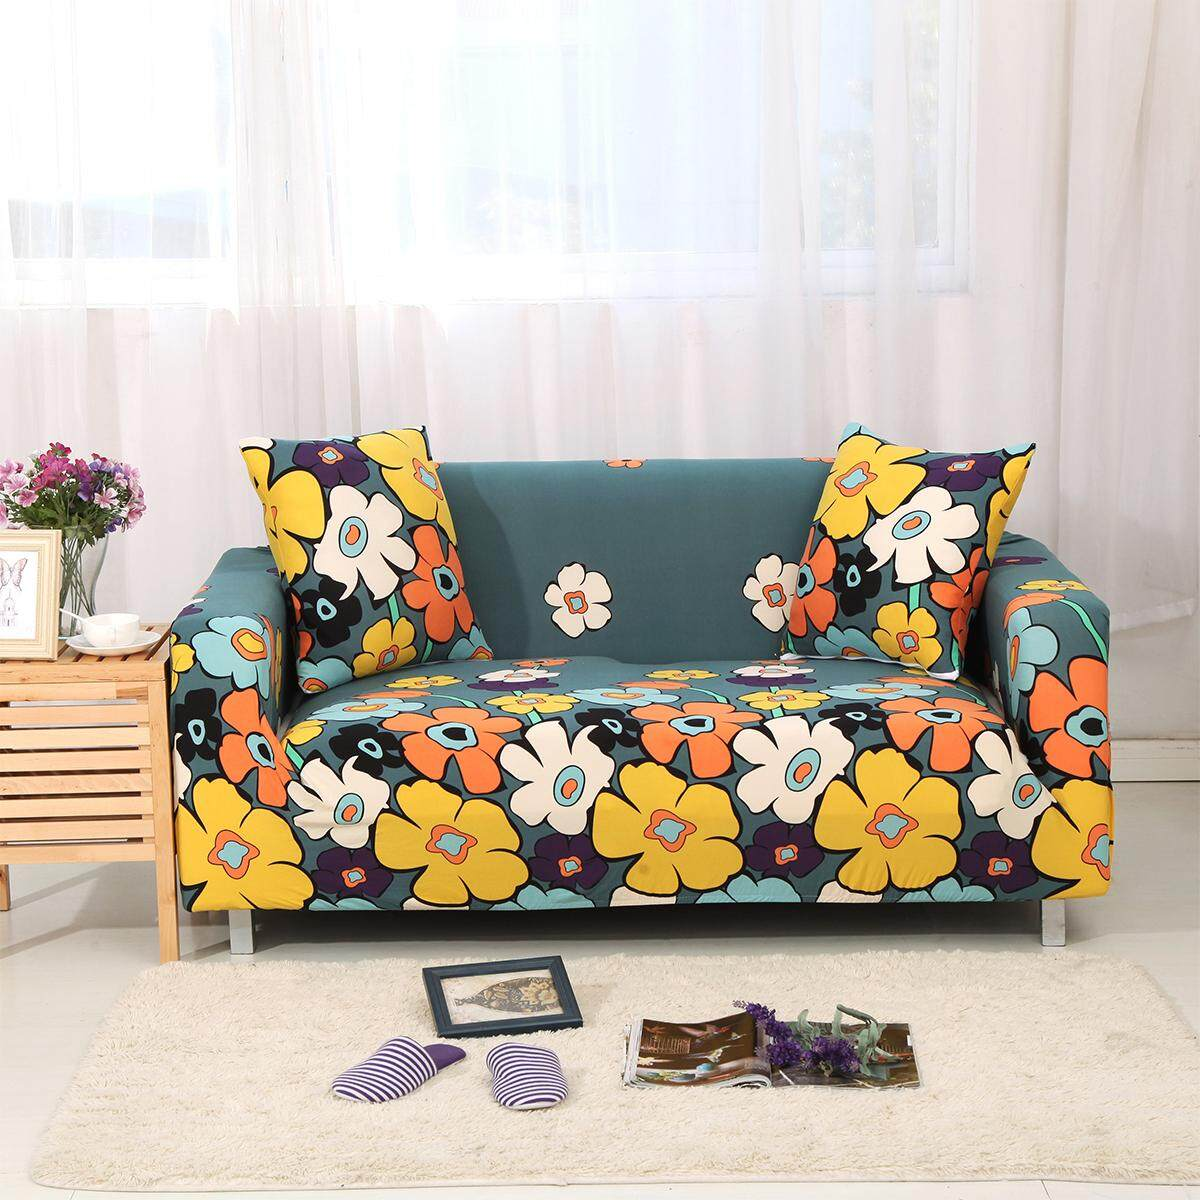 1/2/3/4 Seater Couch Sofa Slipcover Protector Cover w Pillow Case Chair Loveseat - intl